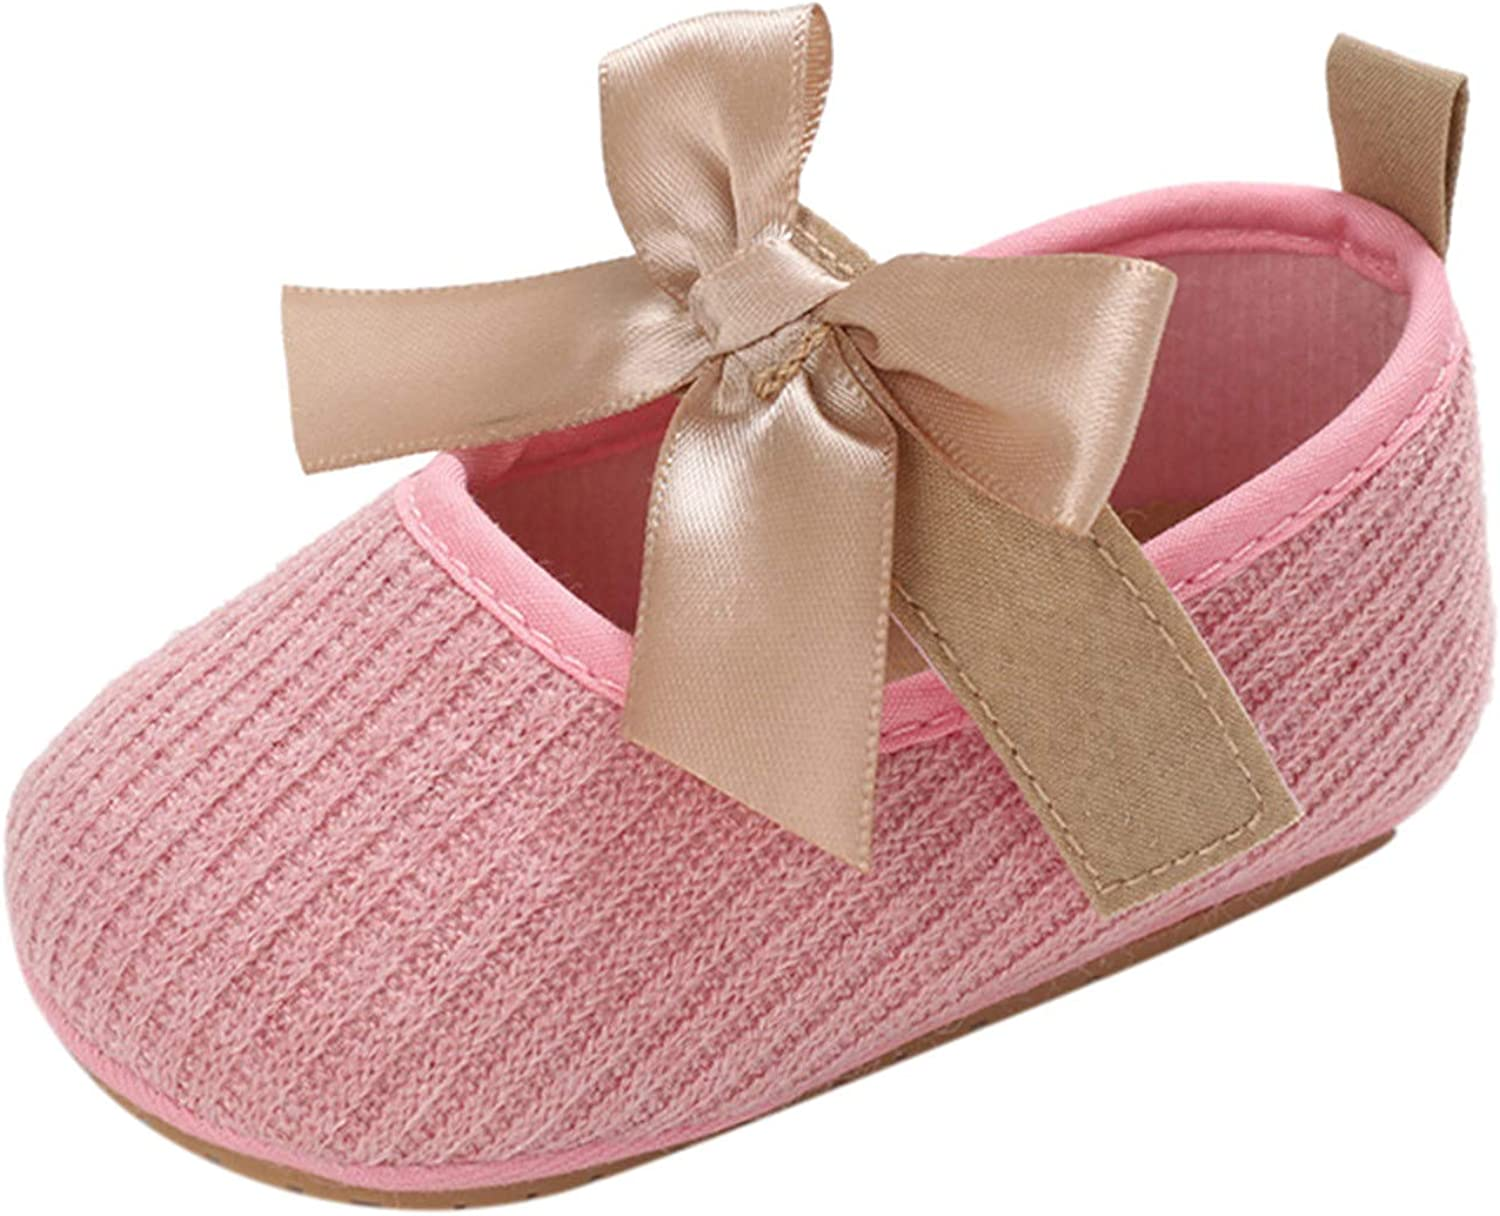 Bolayu Max 90% OFF Infant Baby Girls Bowknot Sole Toddler Soft Pri Anti-Slip Super beauty product restock quality top!